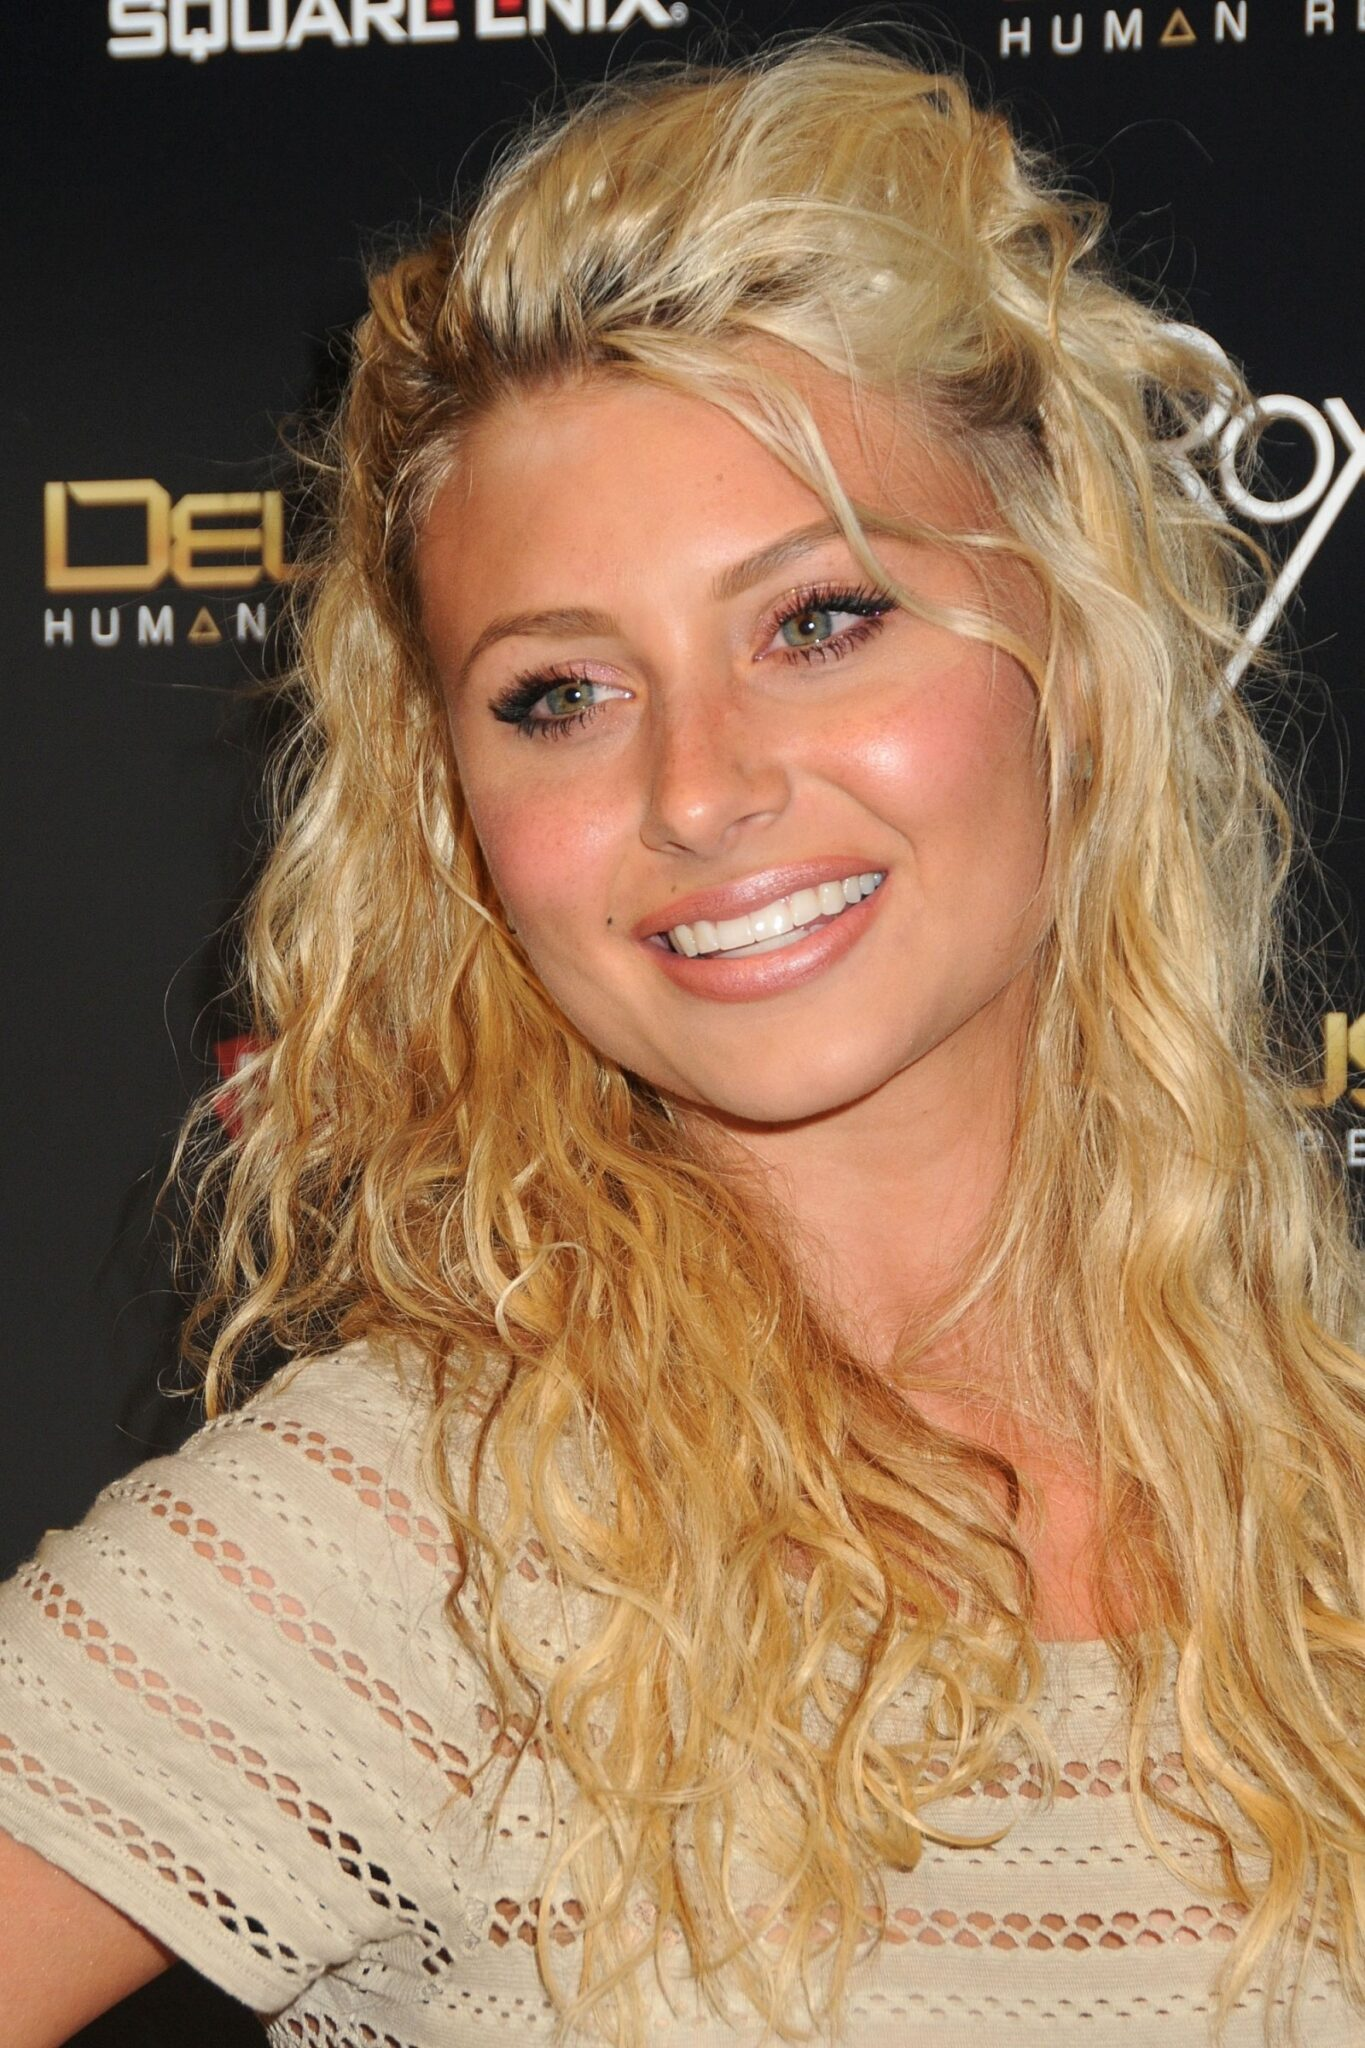 Aly Michalka - Images Gallery